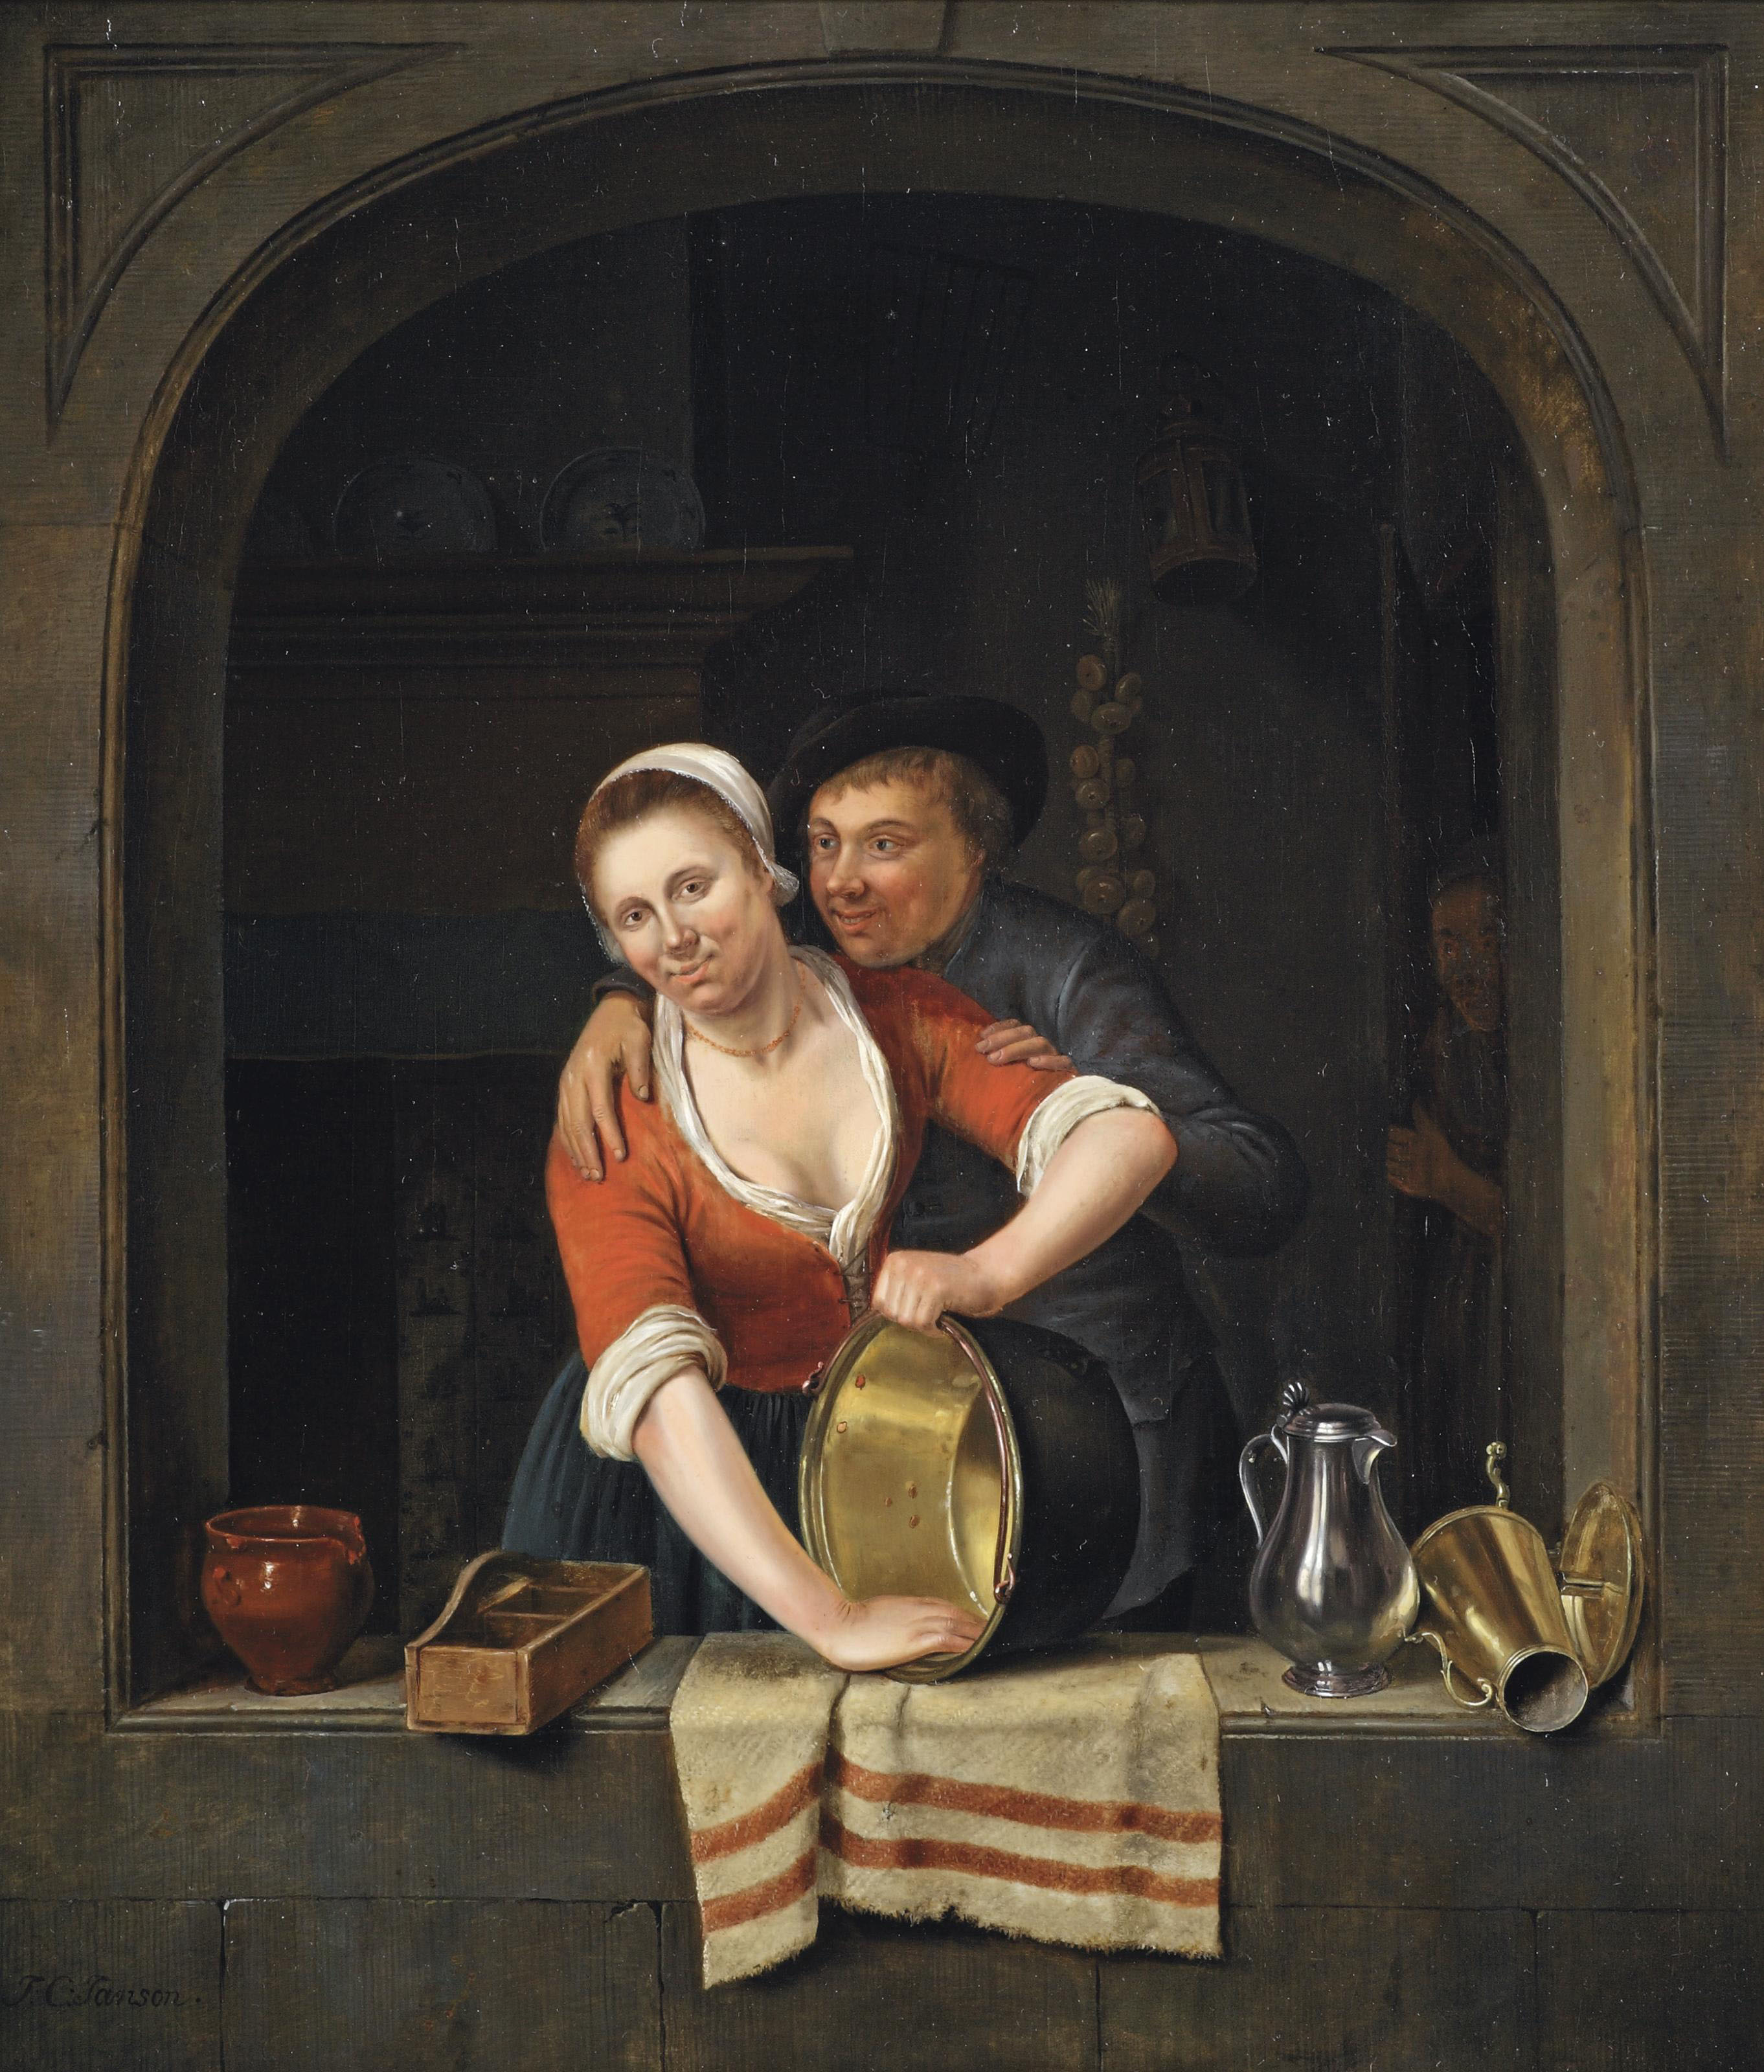 An amorous couple in a window with earthenware, a pan and metal decanters, a kitchen interior with a figure behind a door beyond